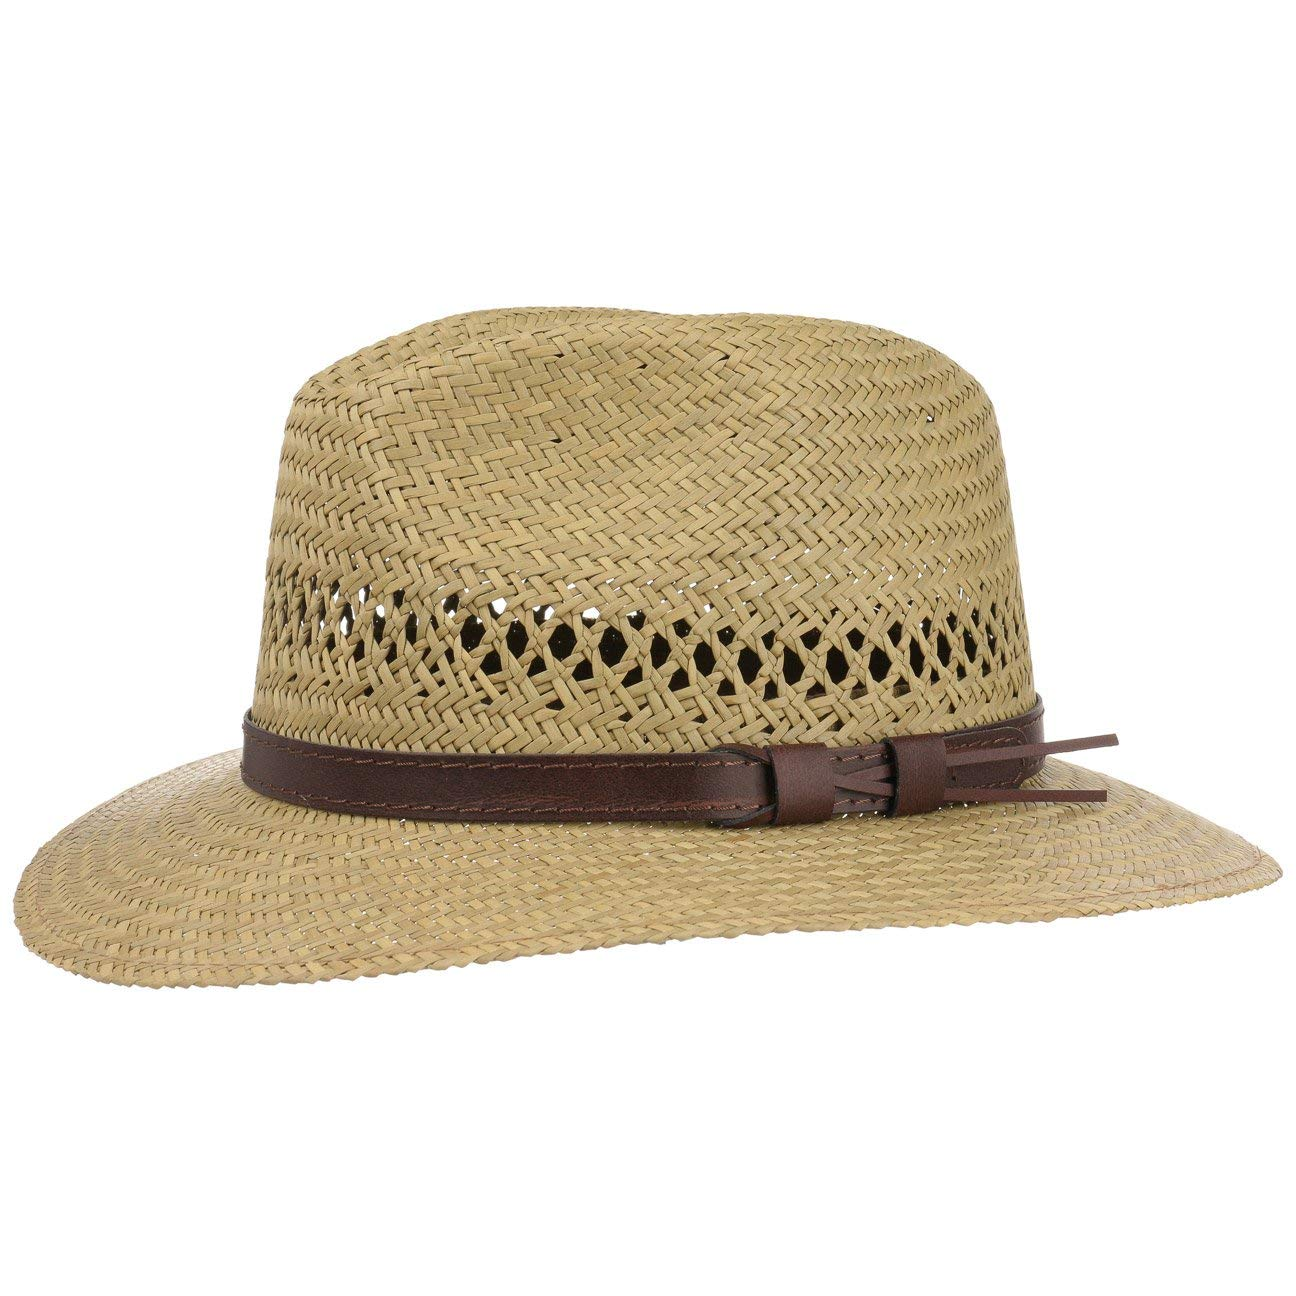 Lipodo Traveller Straw Hat for Women and Men | Summer Hat Made of 100% Straw | Sun Hat with a Brown Leather Band | Summer Hat Available in Sizes S-XL | Made in Italy